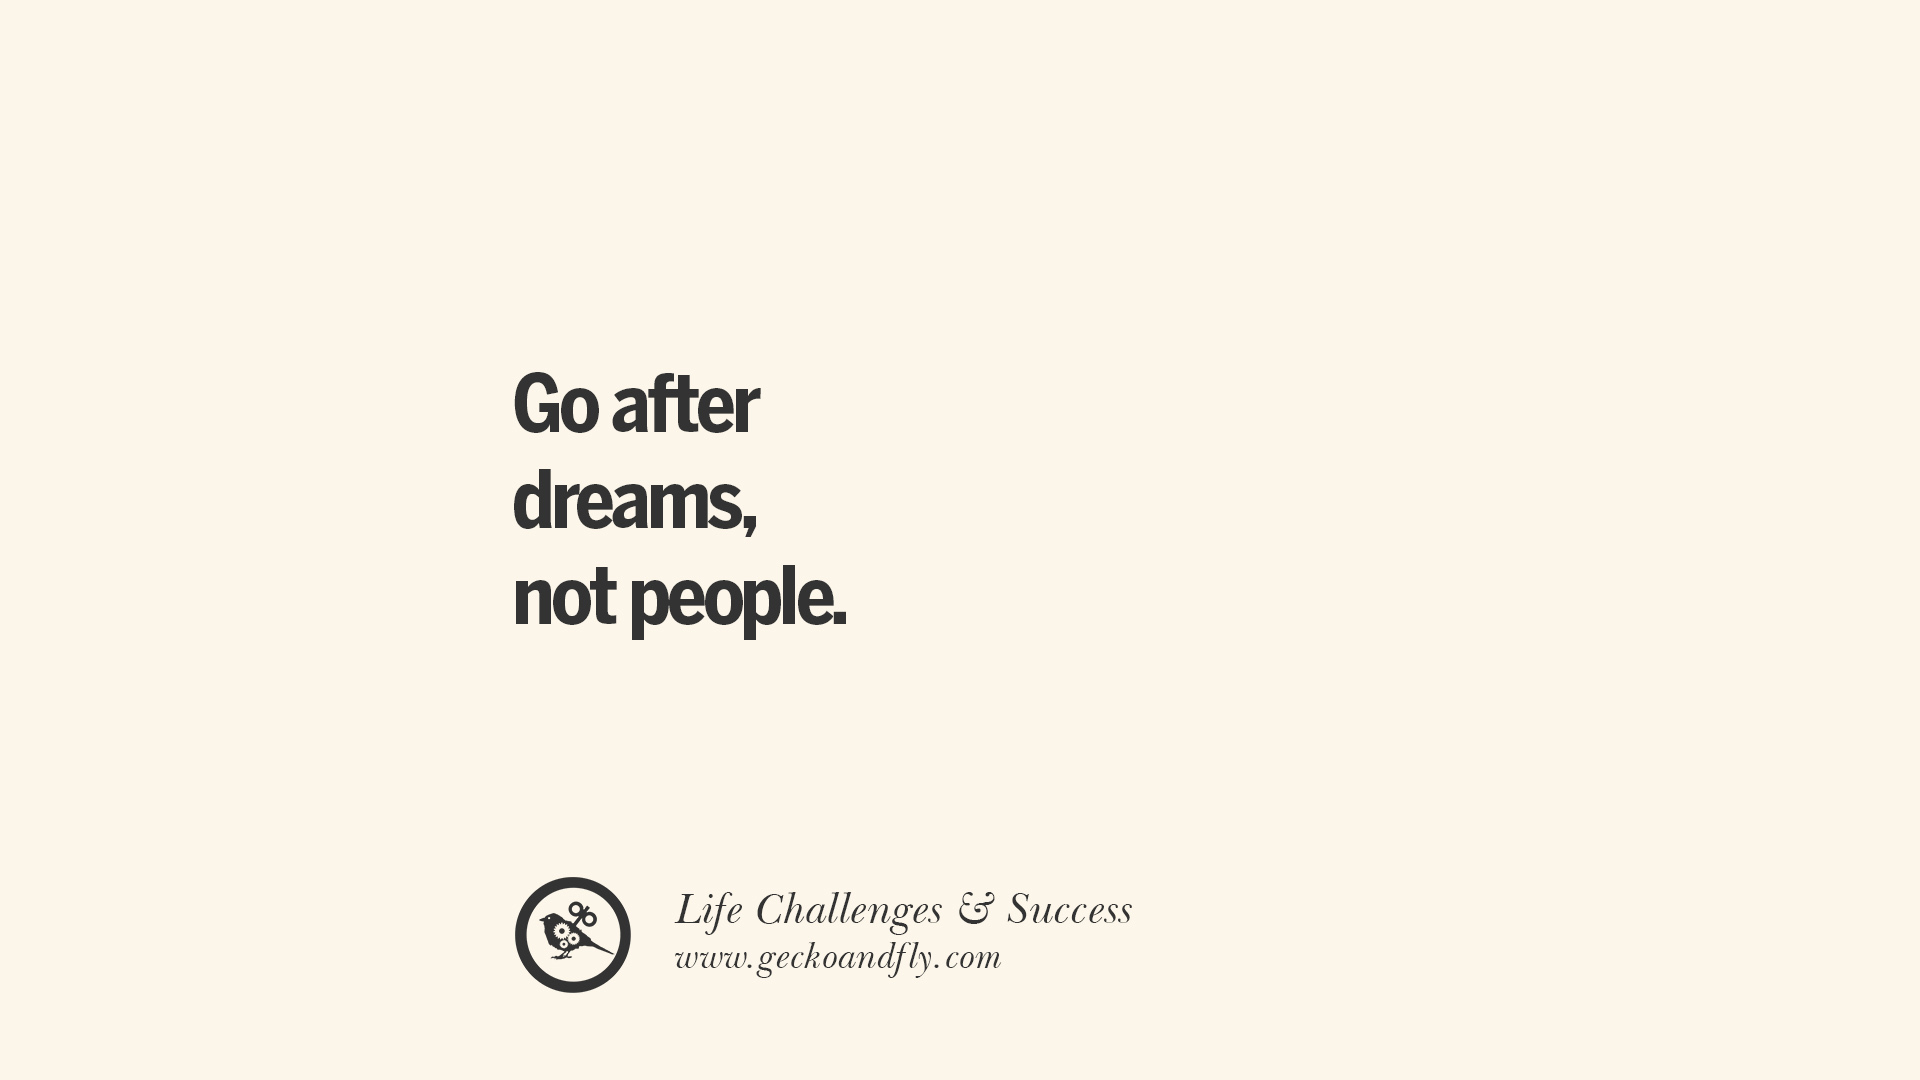 40 Inspirational Quotes About Life Challenges And The